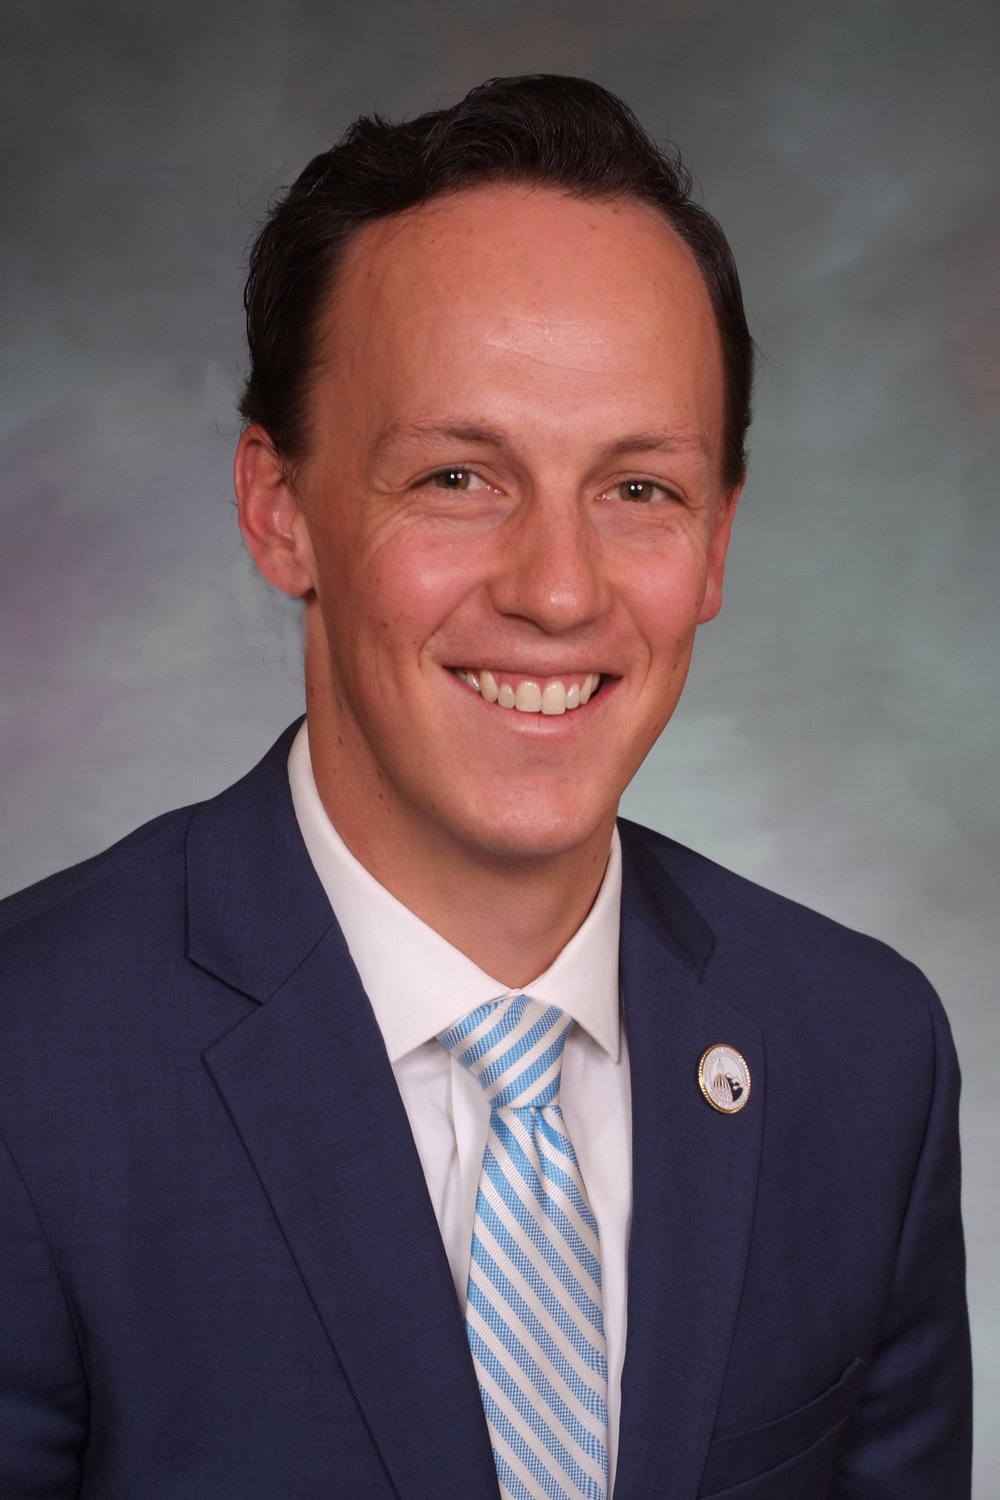 Rep. Dylan Roberts - I was sworn in as a Colorado State Representative on November 13, 2017.During my first year in the legislature, I had the honor of serving on the House Judiciary Committee, the House Agriculture, Livestock & Natural Resources Committee, and the House Transportation & Energy Committee. I was the primary sponsor of twelve bills and six of them were successfully passed and sent to the Governor.On November 6, 2018, the voters of Eagle and Routt Counties elected me to a two-year term by a margin of 60%-34%. During the 2019 Legislative Session I am proud to serve as the Chair of the House Rural Affairs, Chair of the Capital Development Committee, and as a member of the House Judiciary Committee.You can read more about my bills at my general assembly webpage.